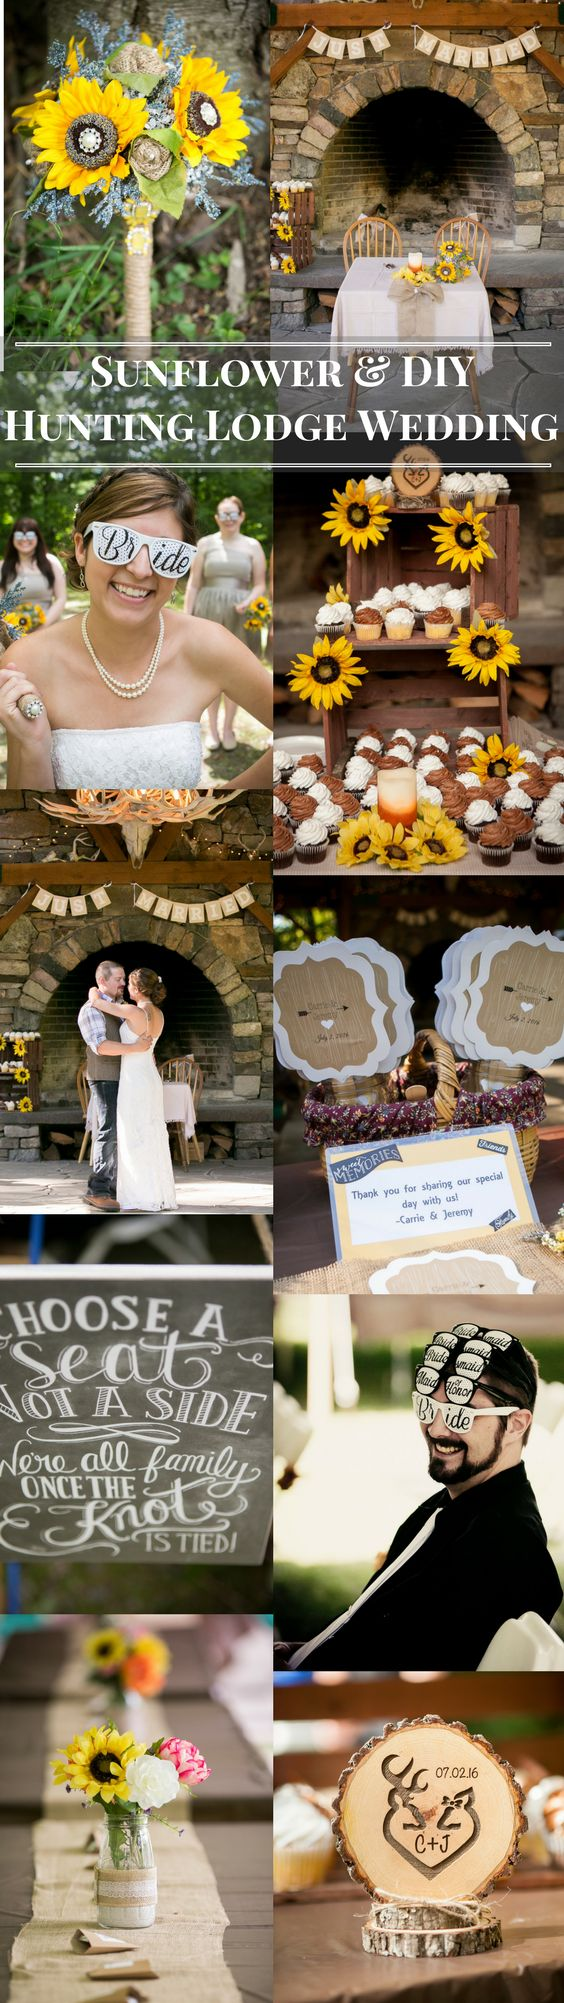 A budget friendly picnic and outdoor wedding filled with love and family. DIY your heart out for this wedding decor by making your own banner and bouquet. A simple wedding theme for the rustic bride.  Wedding color palette sunflower yellow and chocolate brown are perfect for summer and fall weddings. Complement the colors with burlap accents.